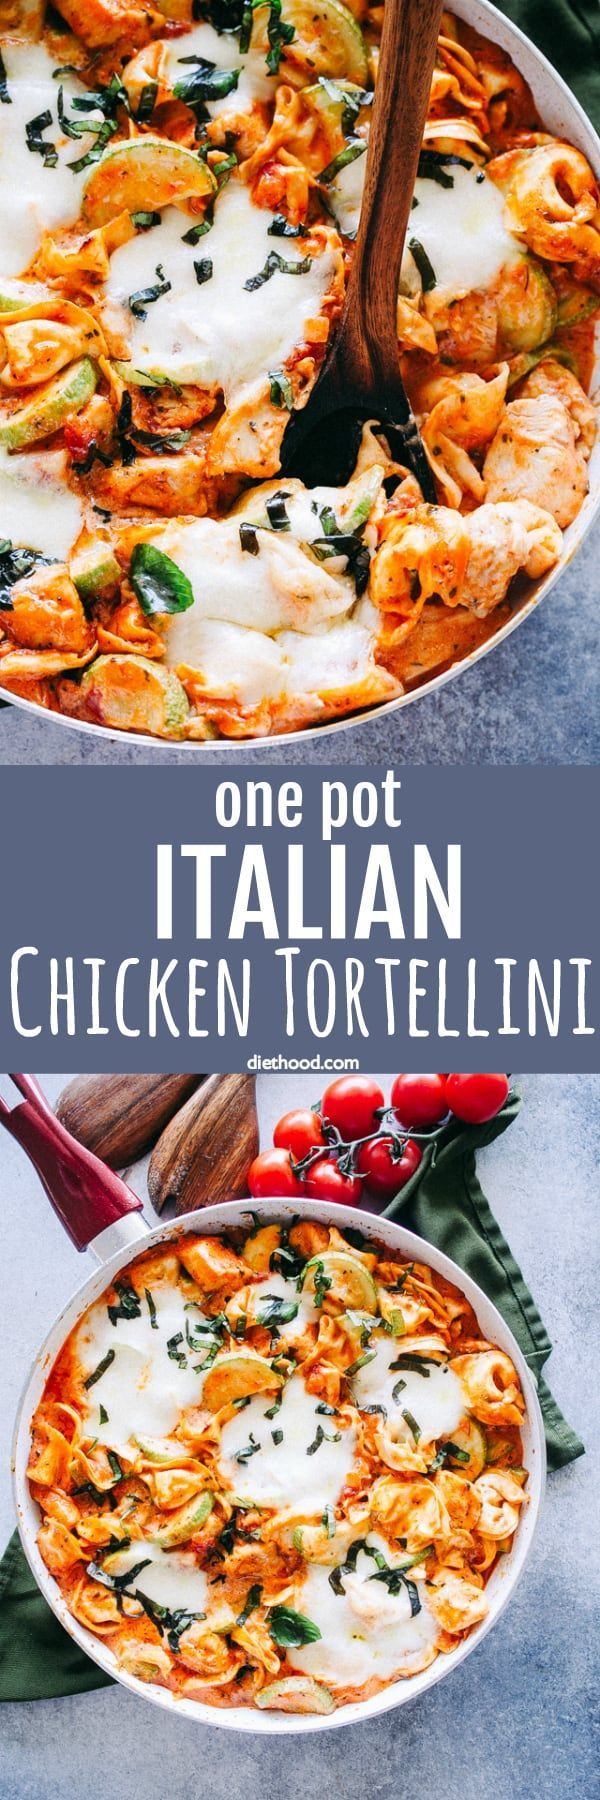 One Pot Italian Chicken Tortellini Recipe - A delicious and easy dinner recipe packed with chicken, zucchini, cheese, and tortellini! Get ready for a wonderful, picky-eater approved, 30-minute meal prepared in just one pot!